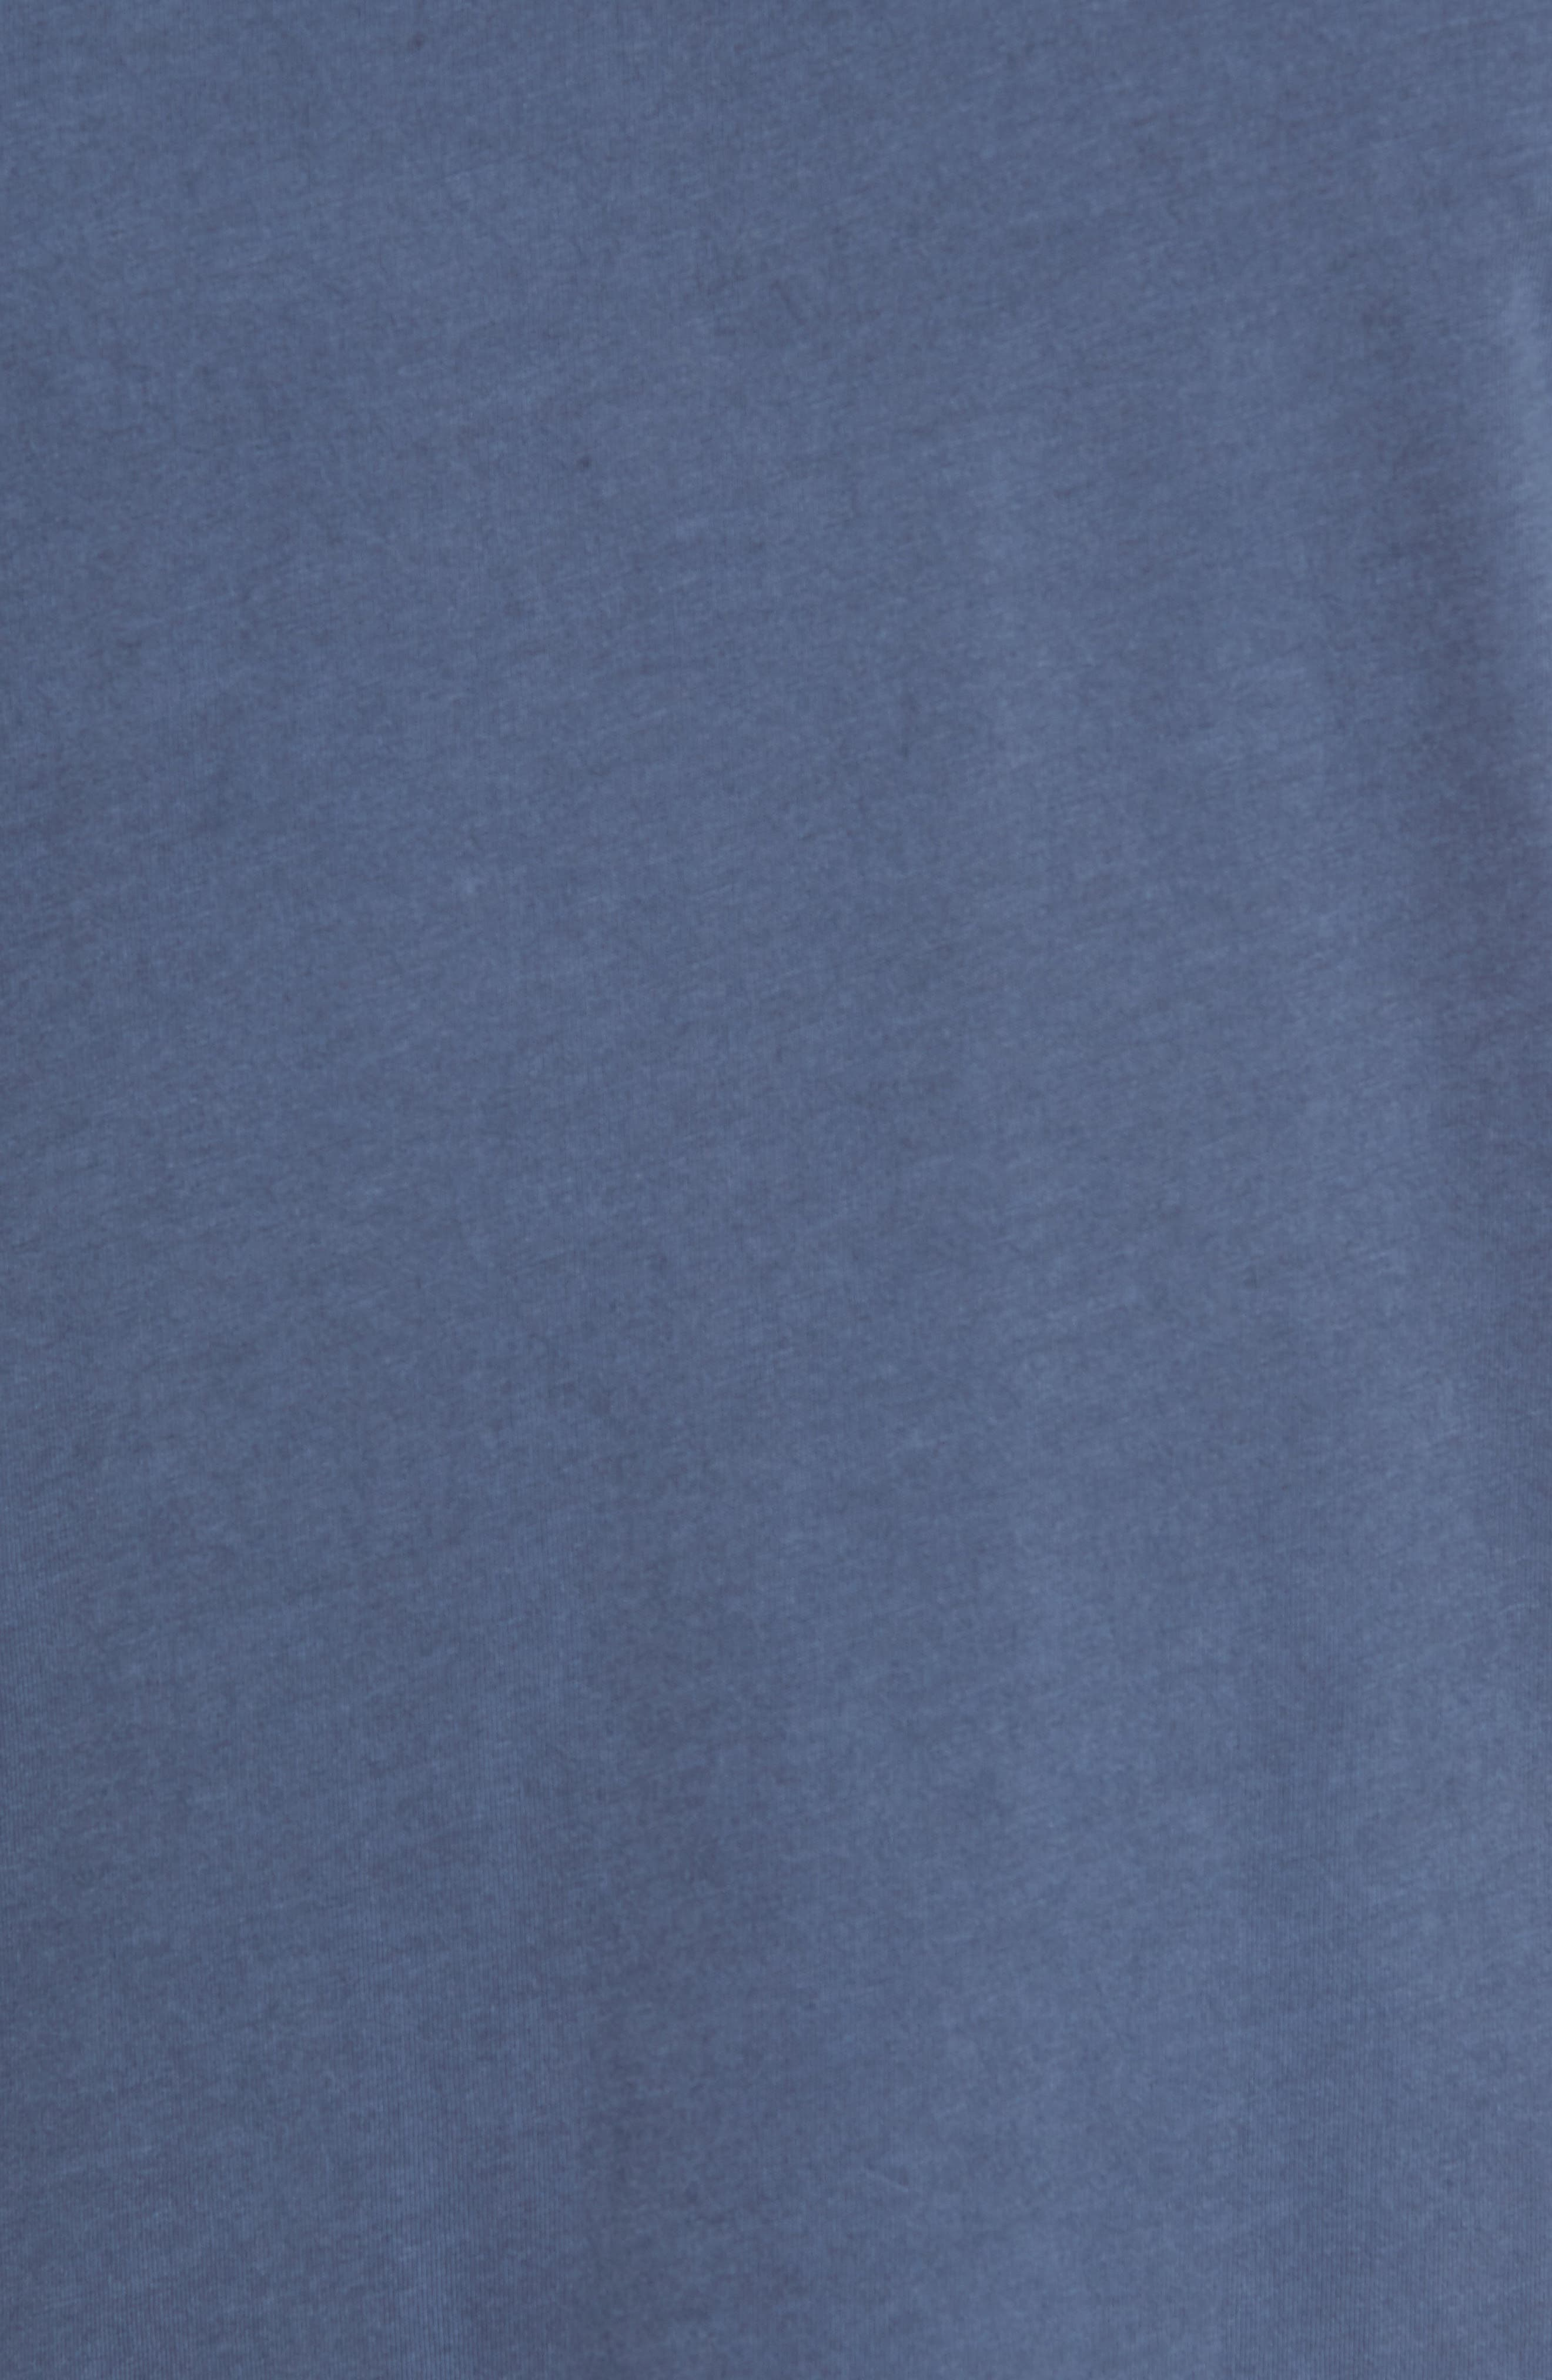 Flintlock Stripe T-Shirt,                             Alternate thumbnail 5, color,                             PIGMENT BLUE GREY